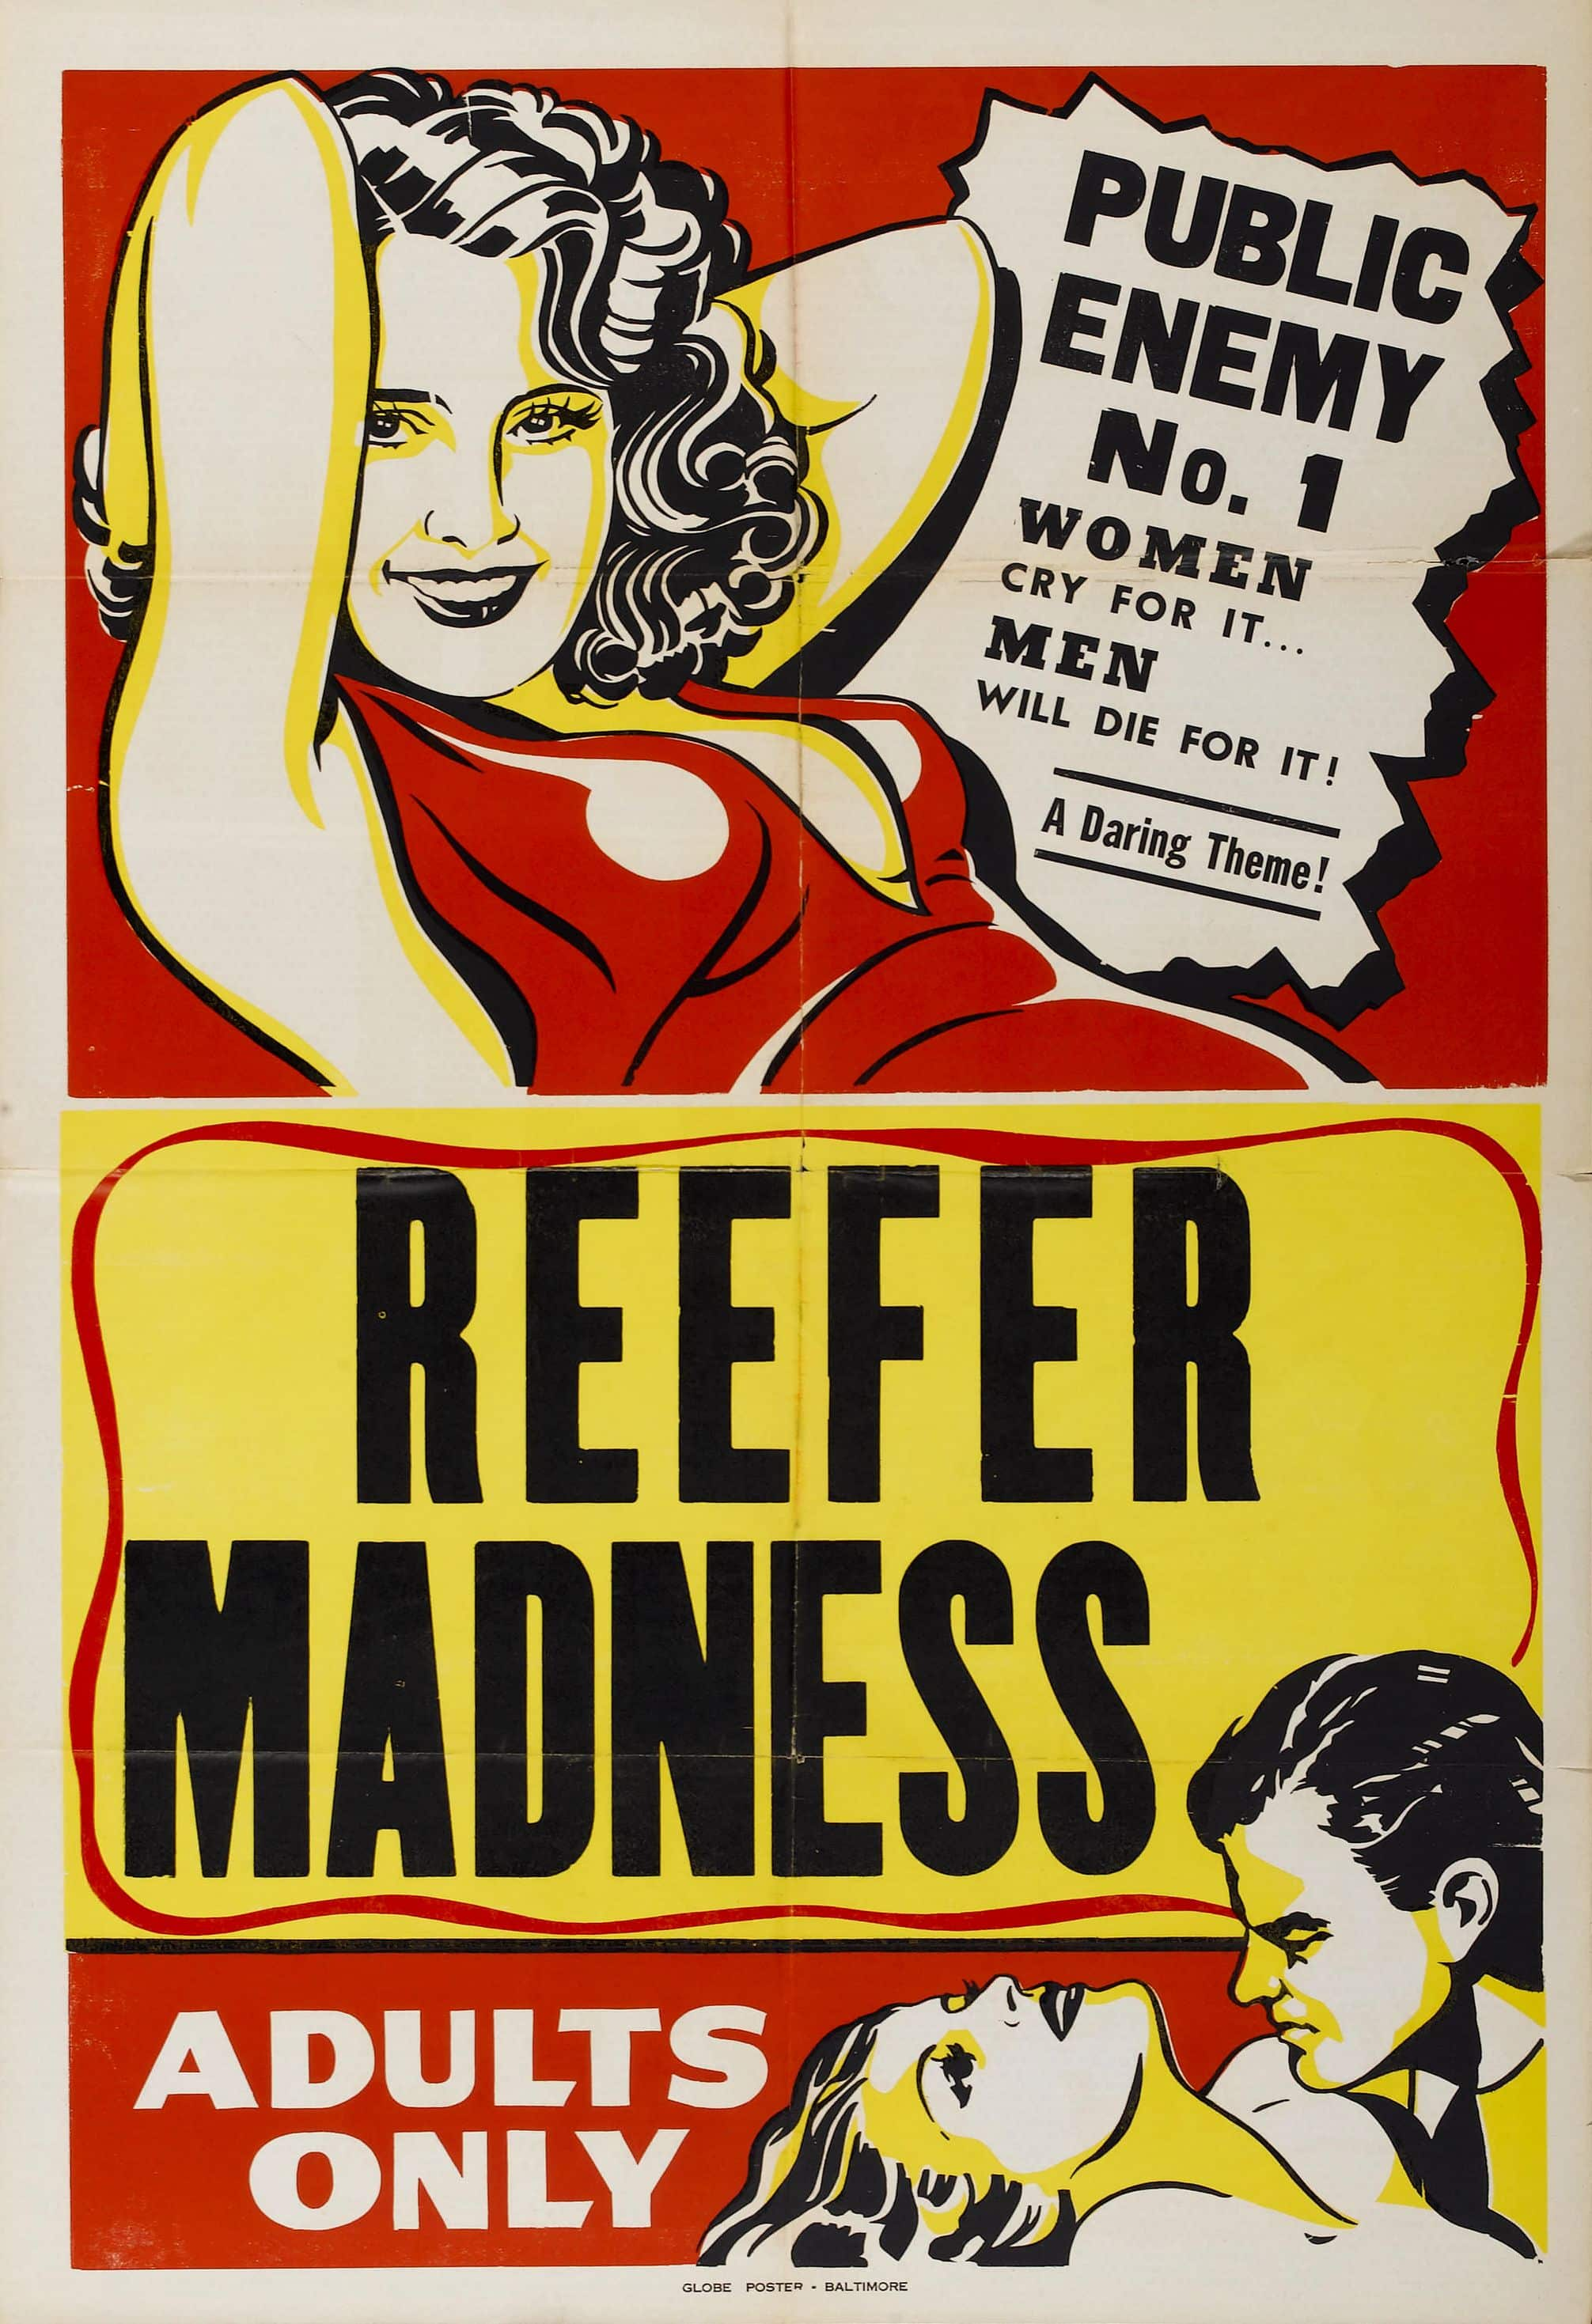 reefer_madness_poster_01